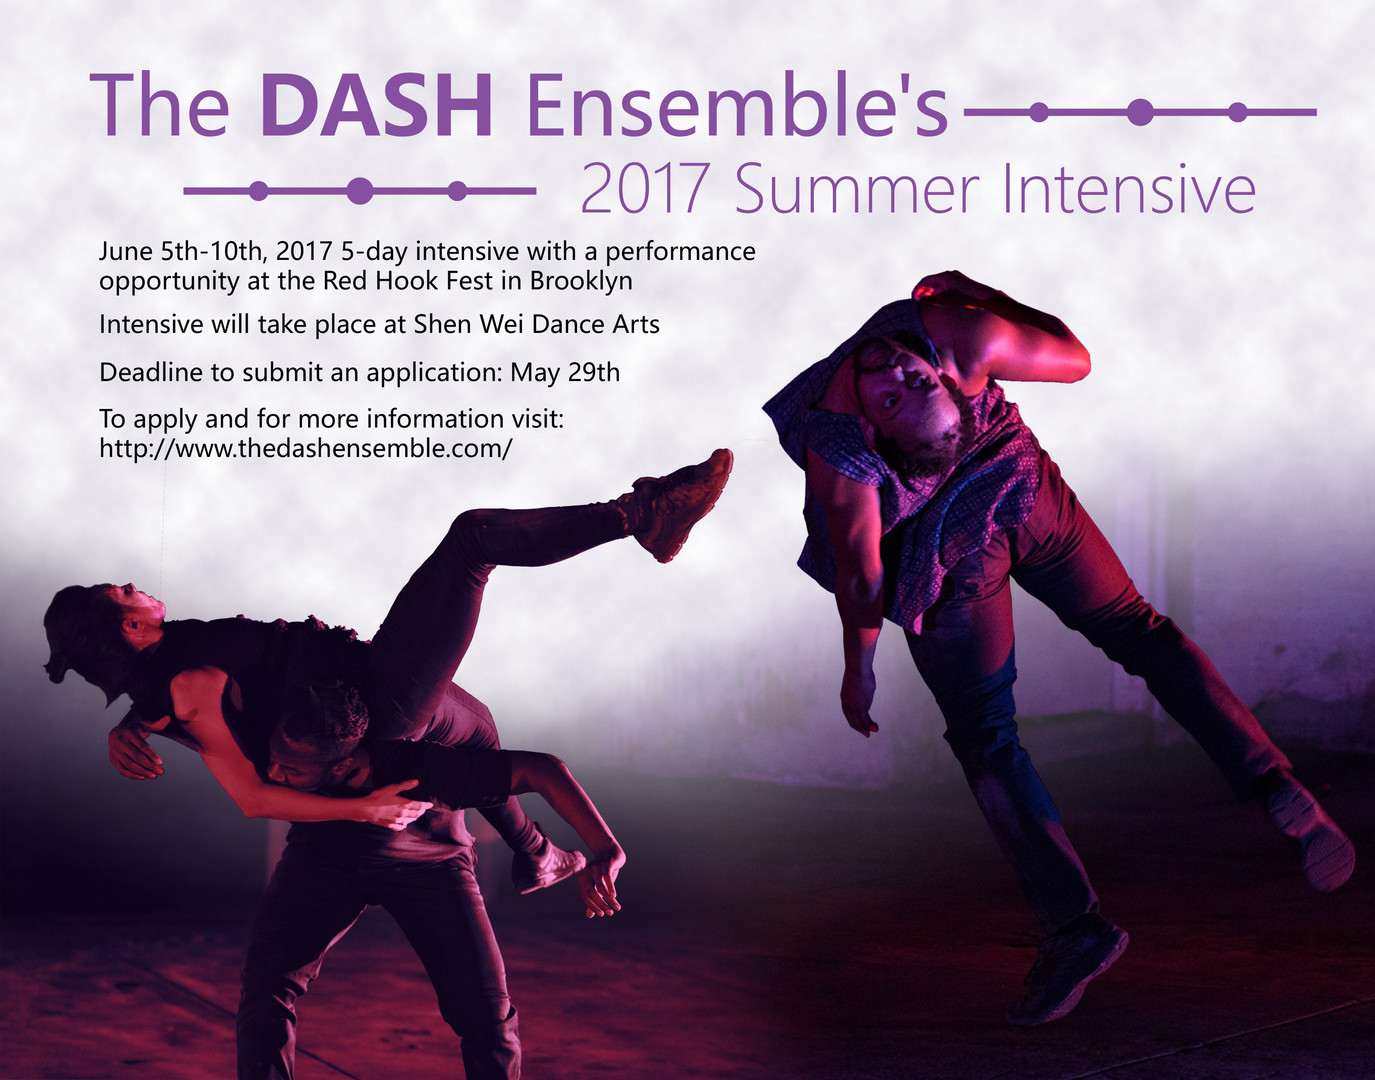 The DASH Ensemble